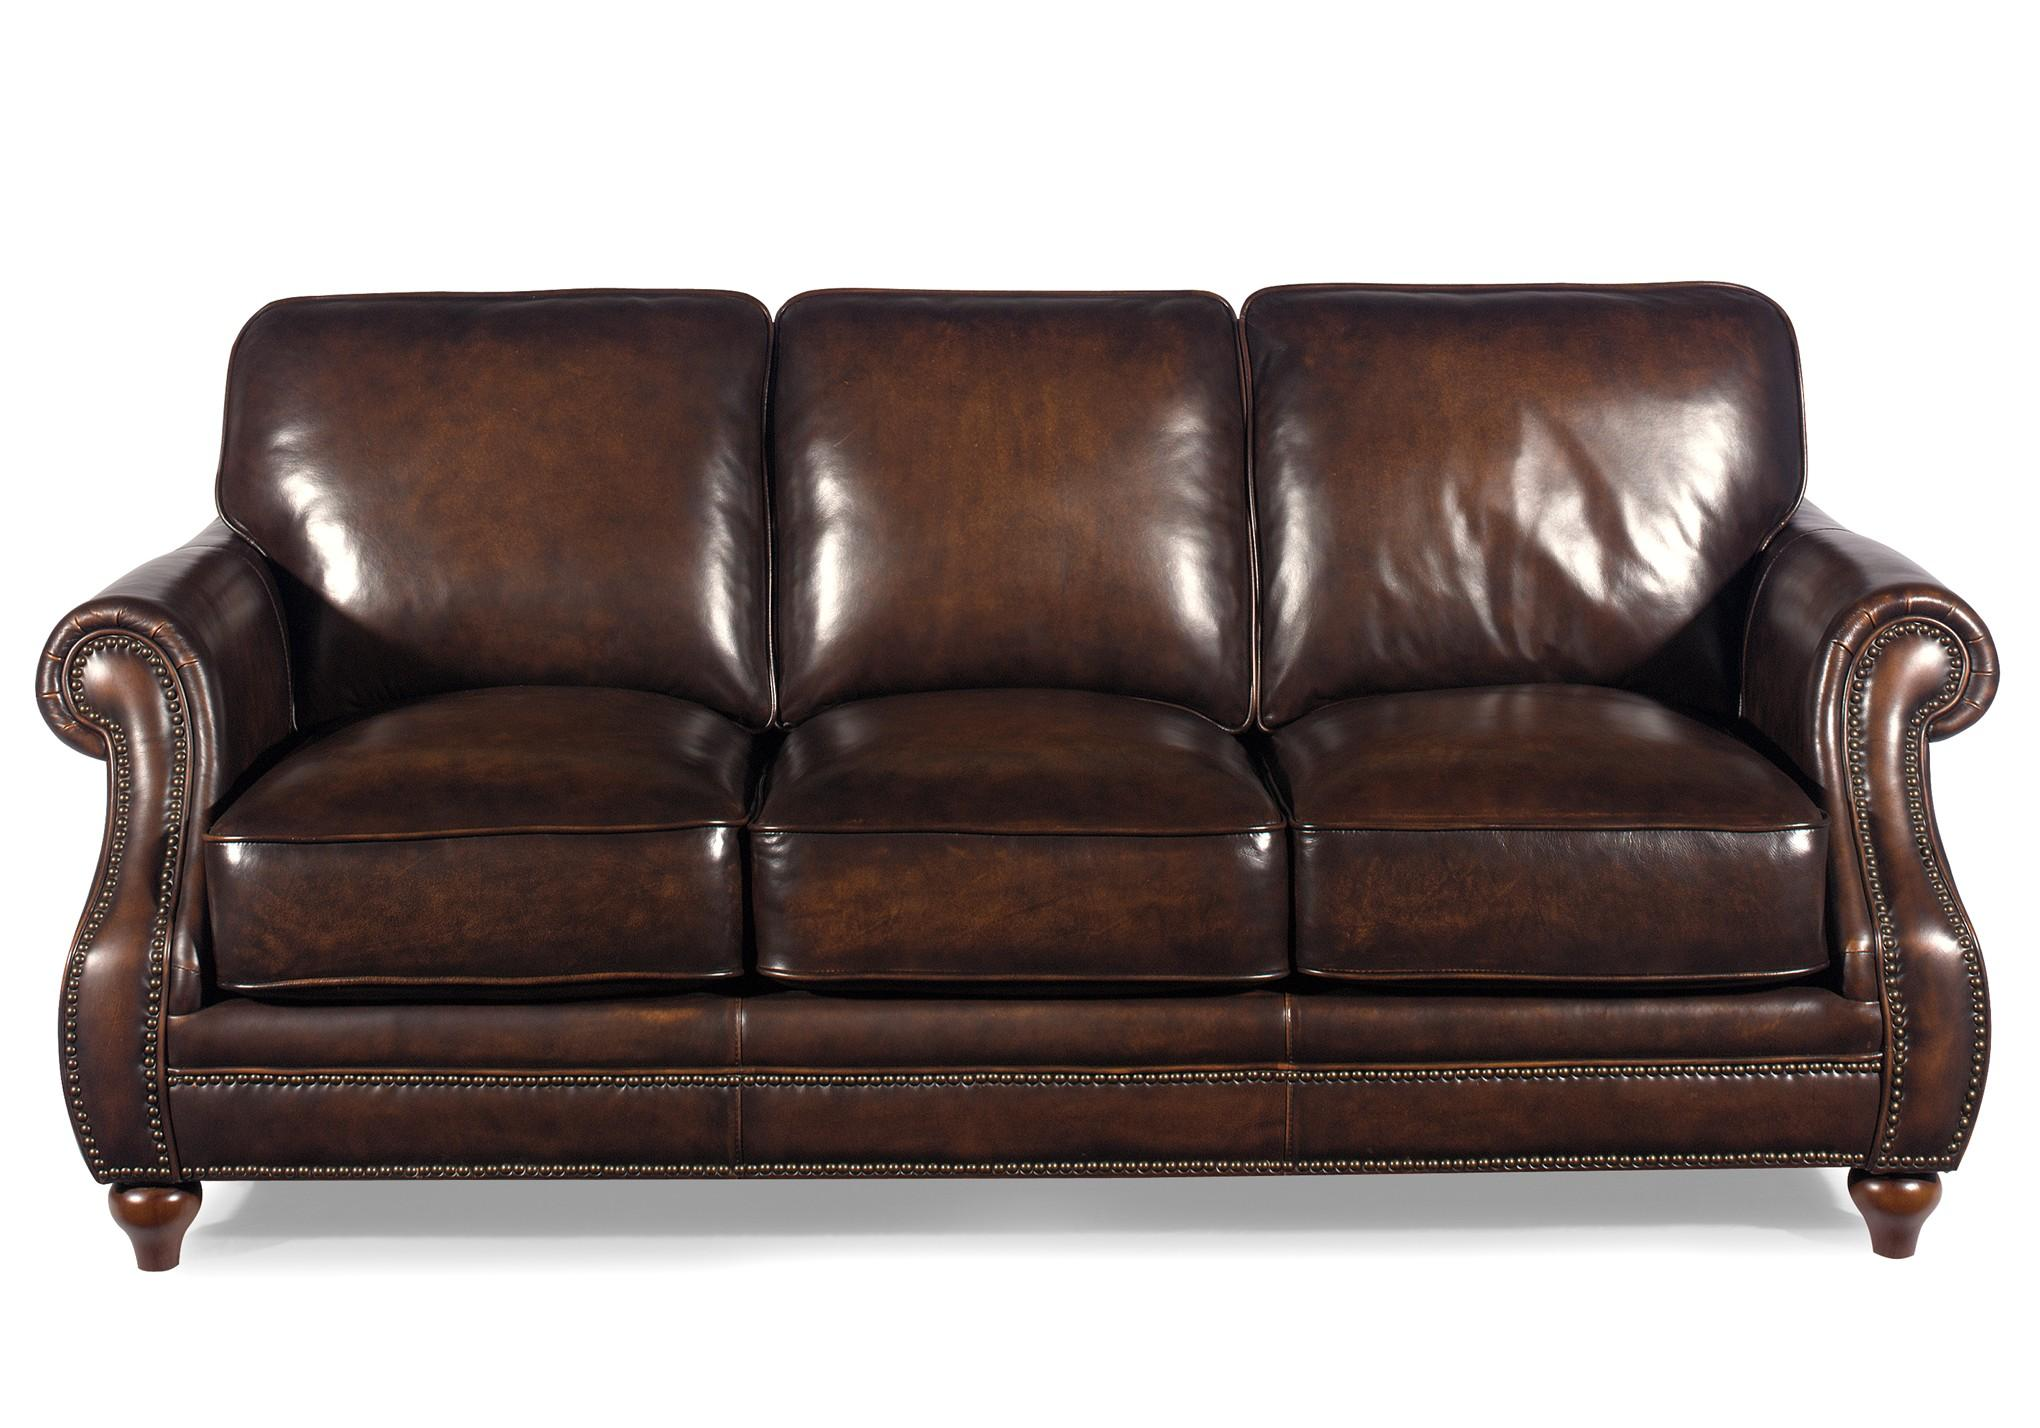 Traditional Leather Sofa with Rolled Arms and Nailhead Trim : products2Fcraftmaster2Fcolor2Fl121500l121550 b0 from www.wolffurniture.com size 2040 x 1428 jpeg 220kB